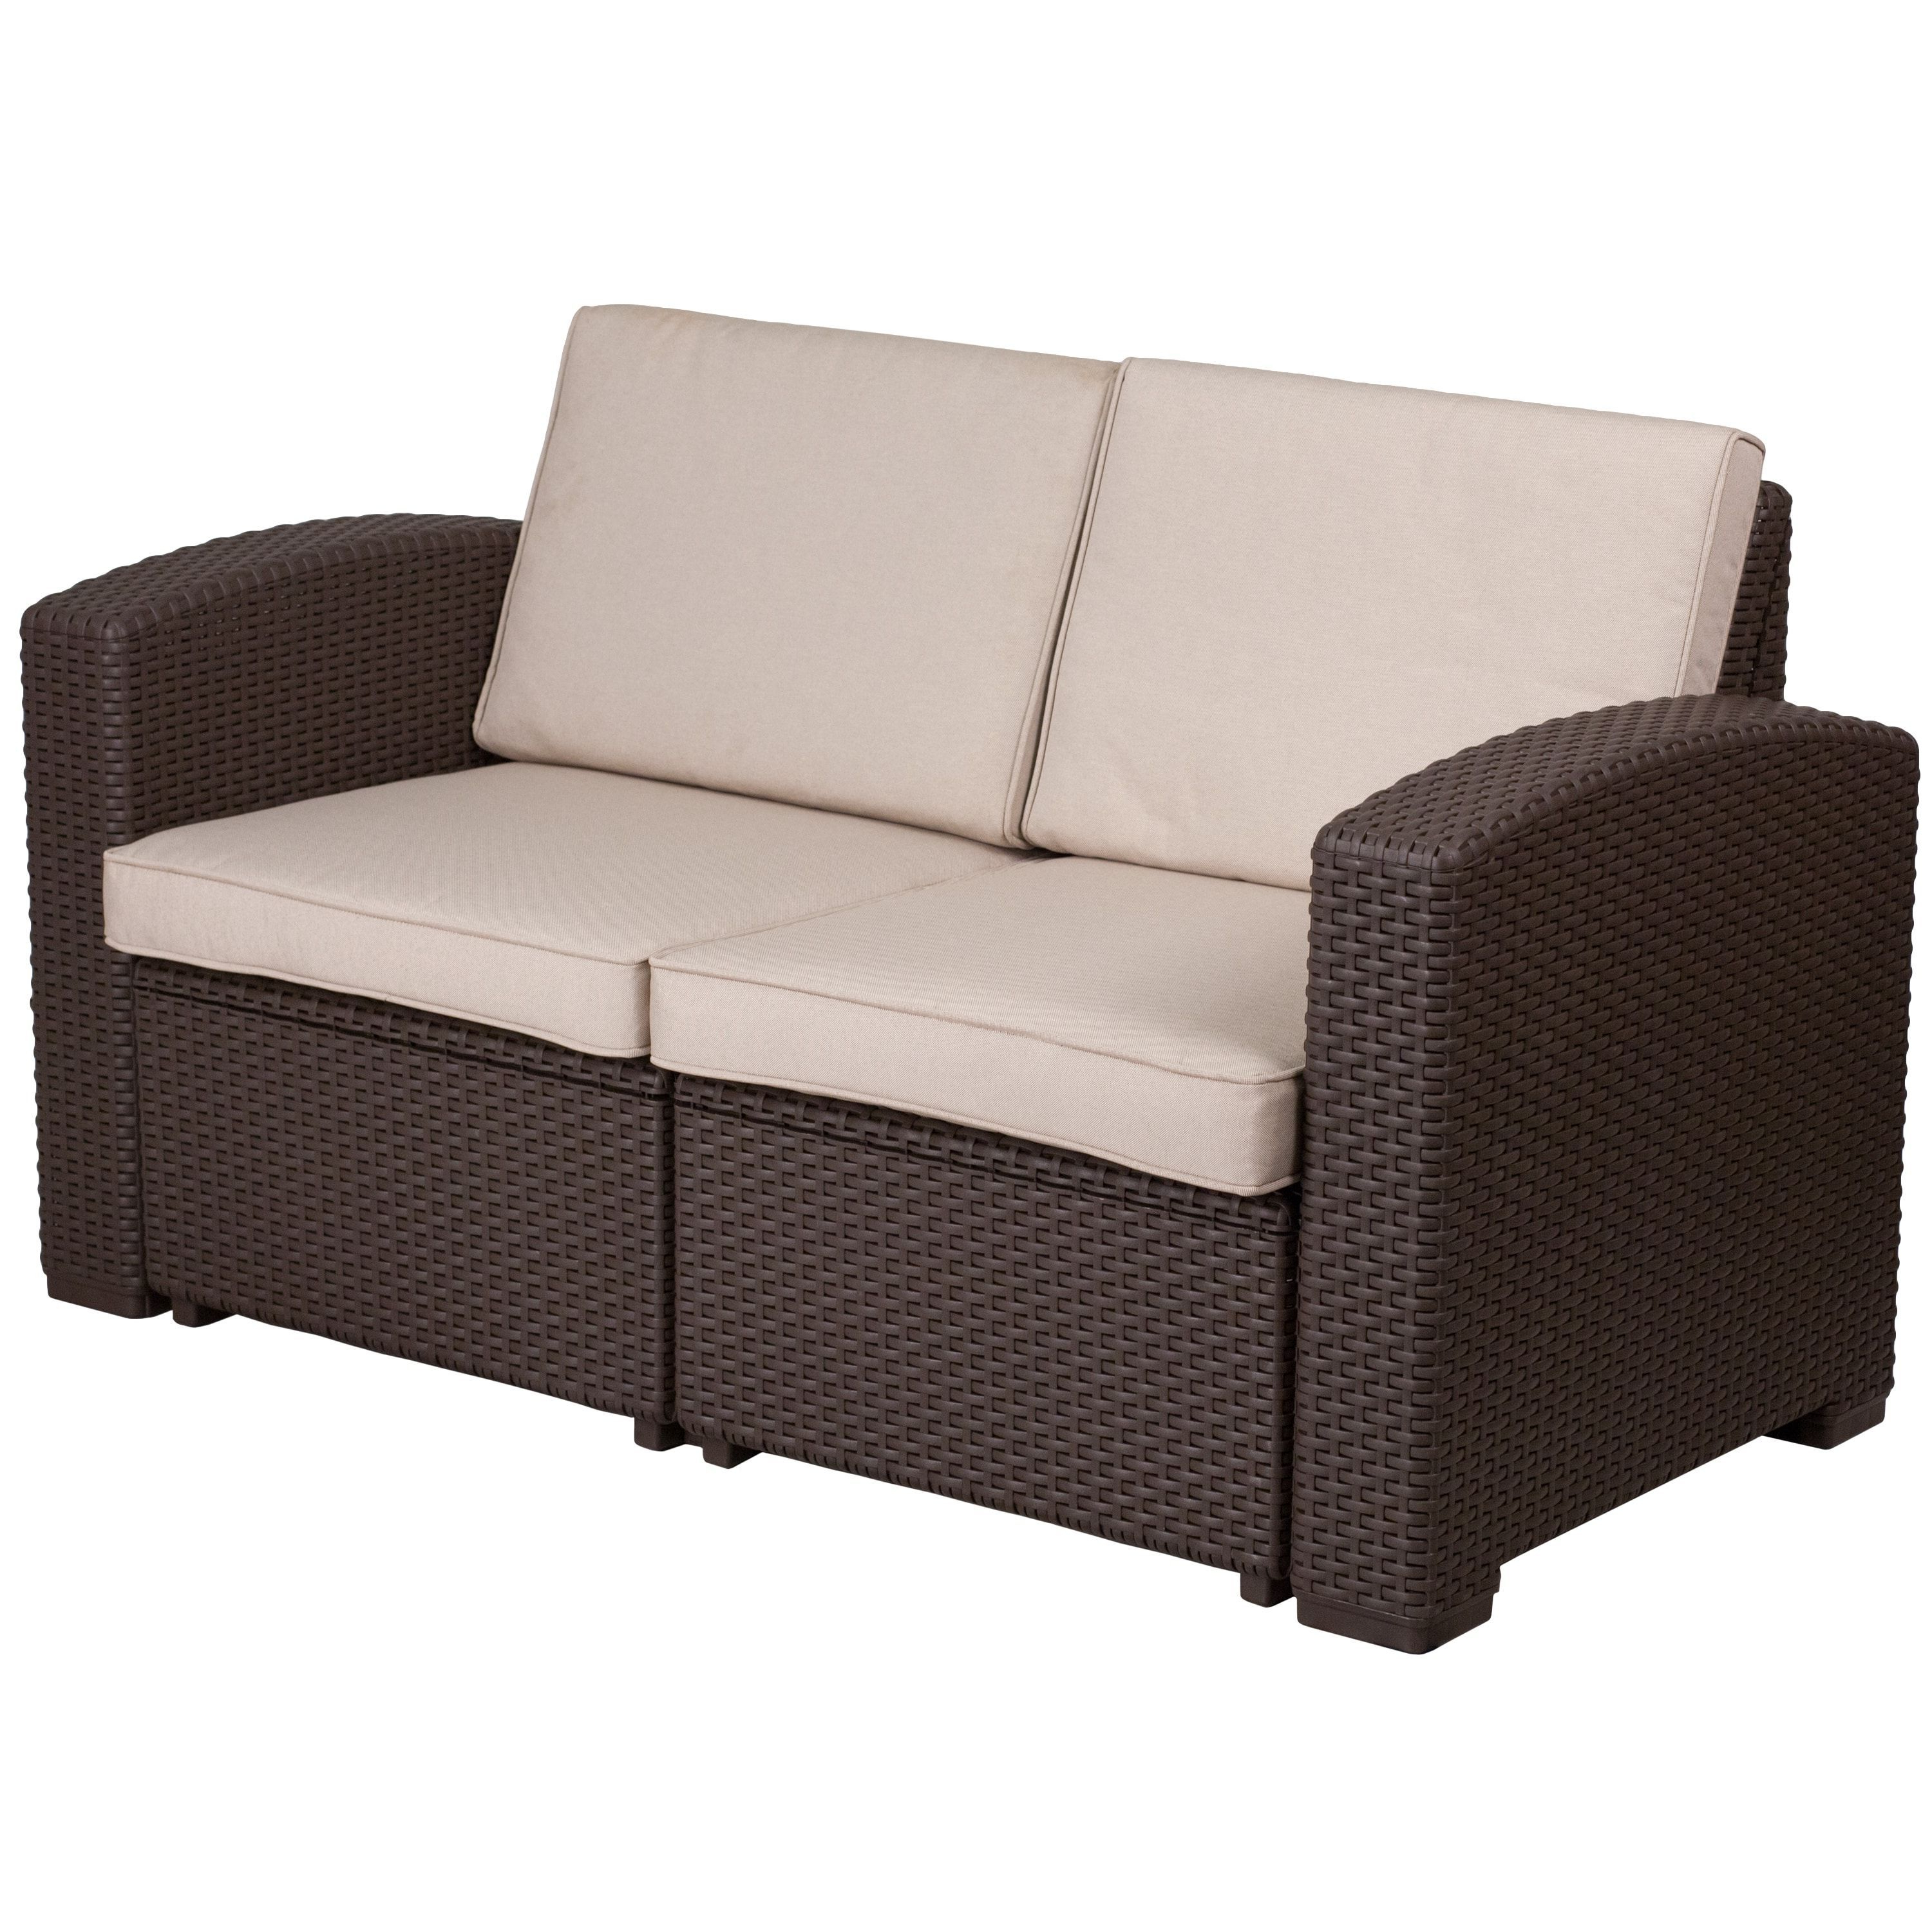 Clifford Loveseats With Cushion Throughout Most Recent Faux Rattan Loveseat With All Weather Cushions (Chocolate (View 5 of 20)